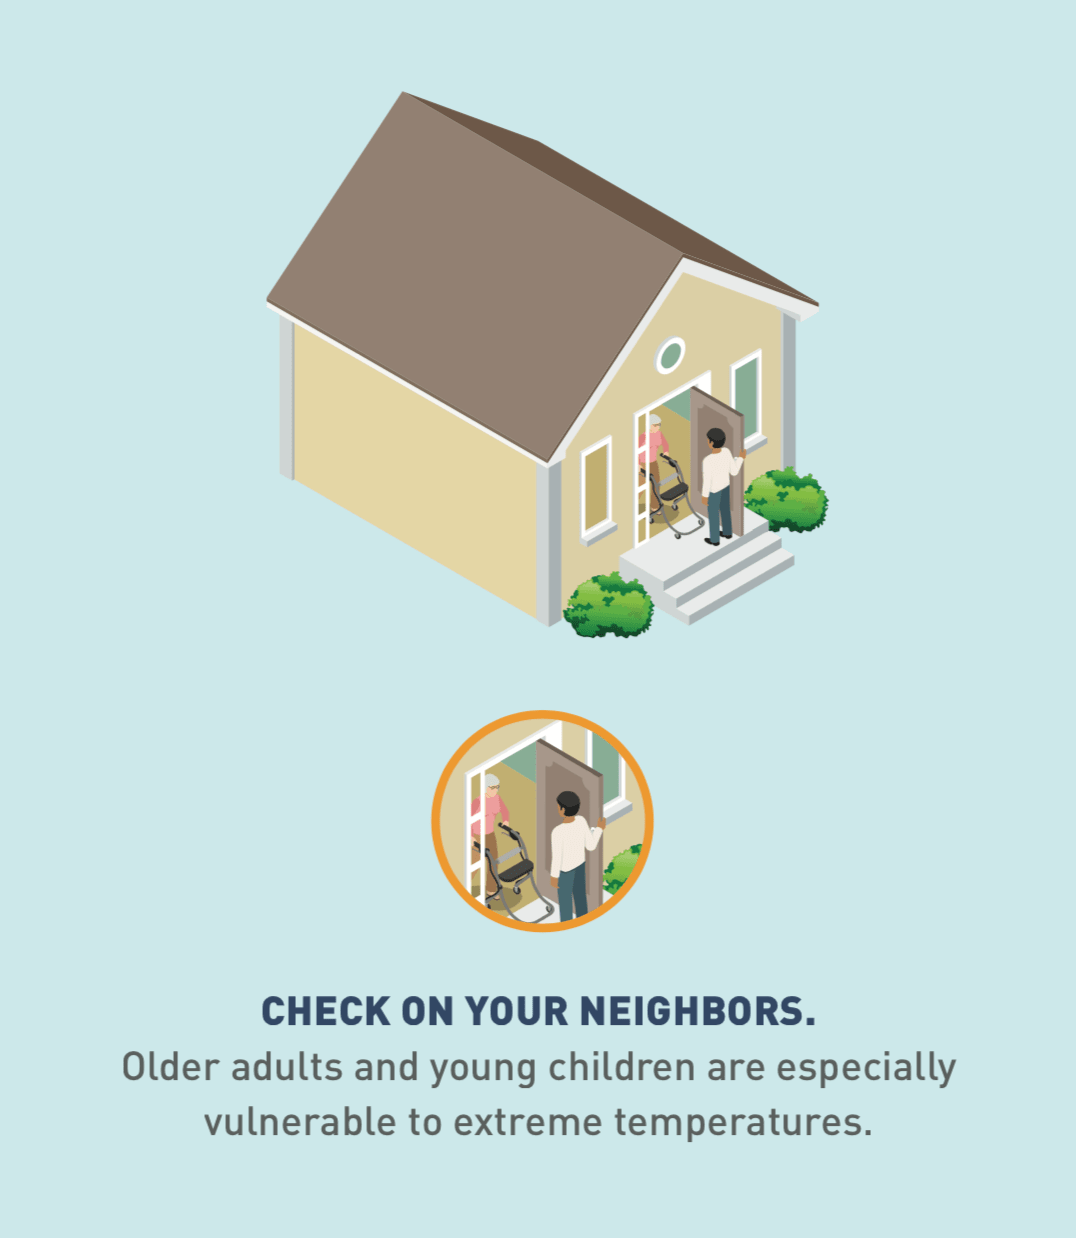 Illustration and an icon of a person checking at the door of an elderly neighbor.